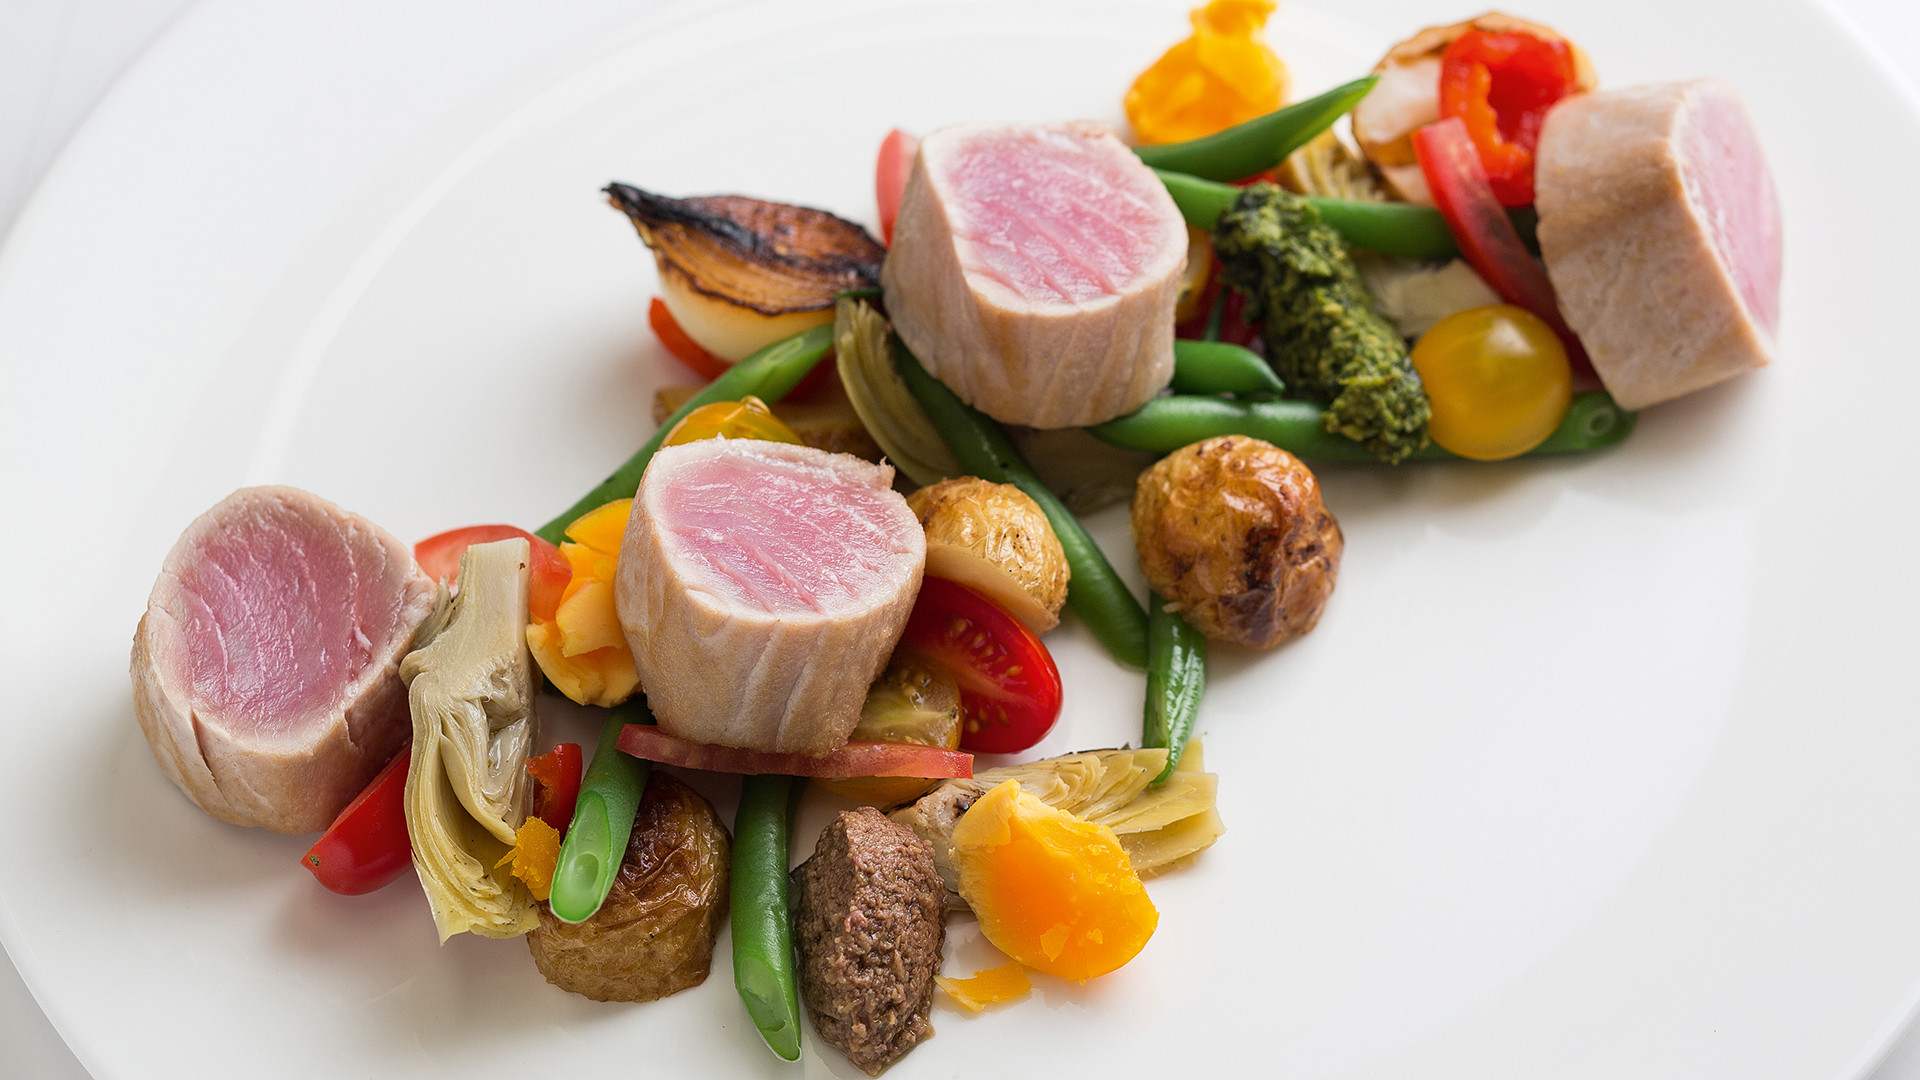 Fine wining and dining at Leeu Estates in Franschhoek